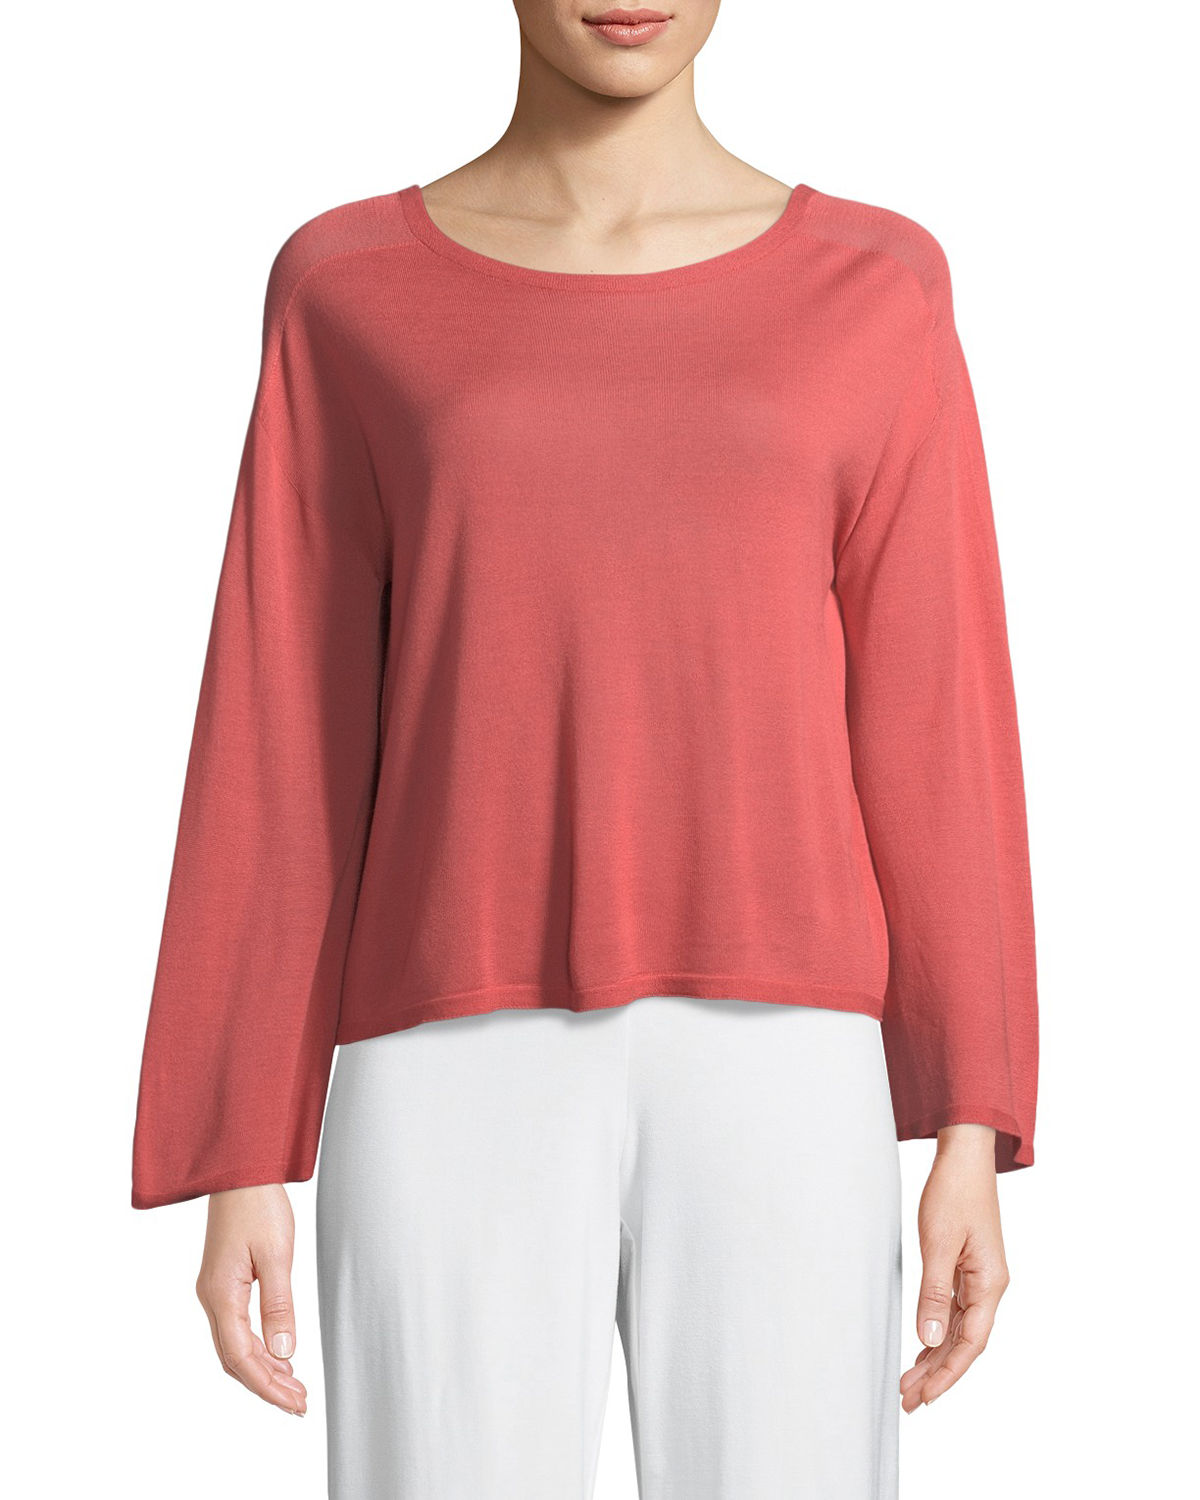 Seamless Sleek Bell-Sleeve Top, Plus Size